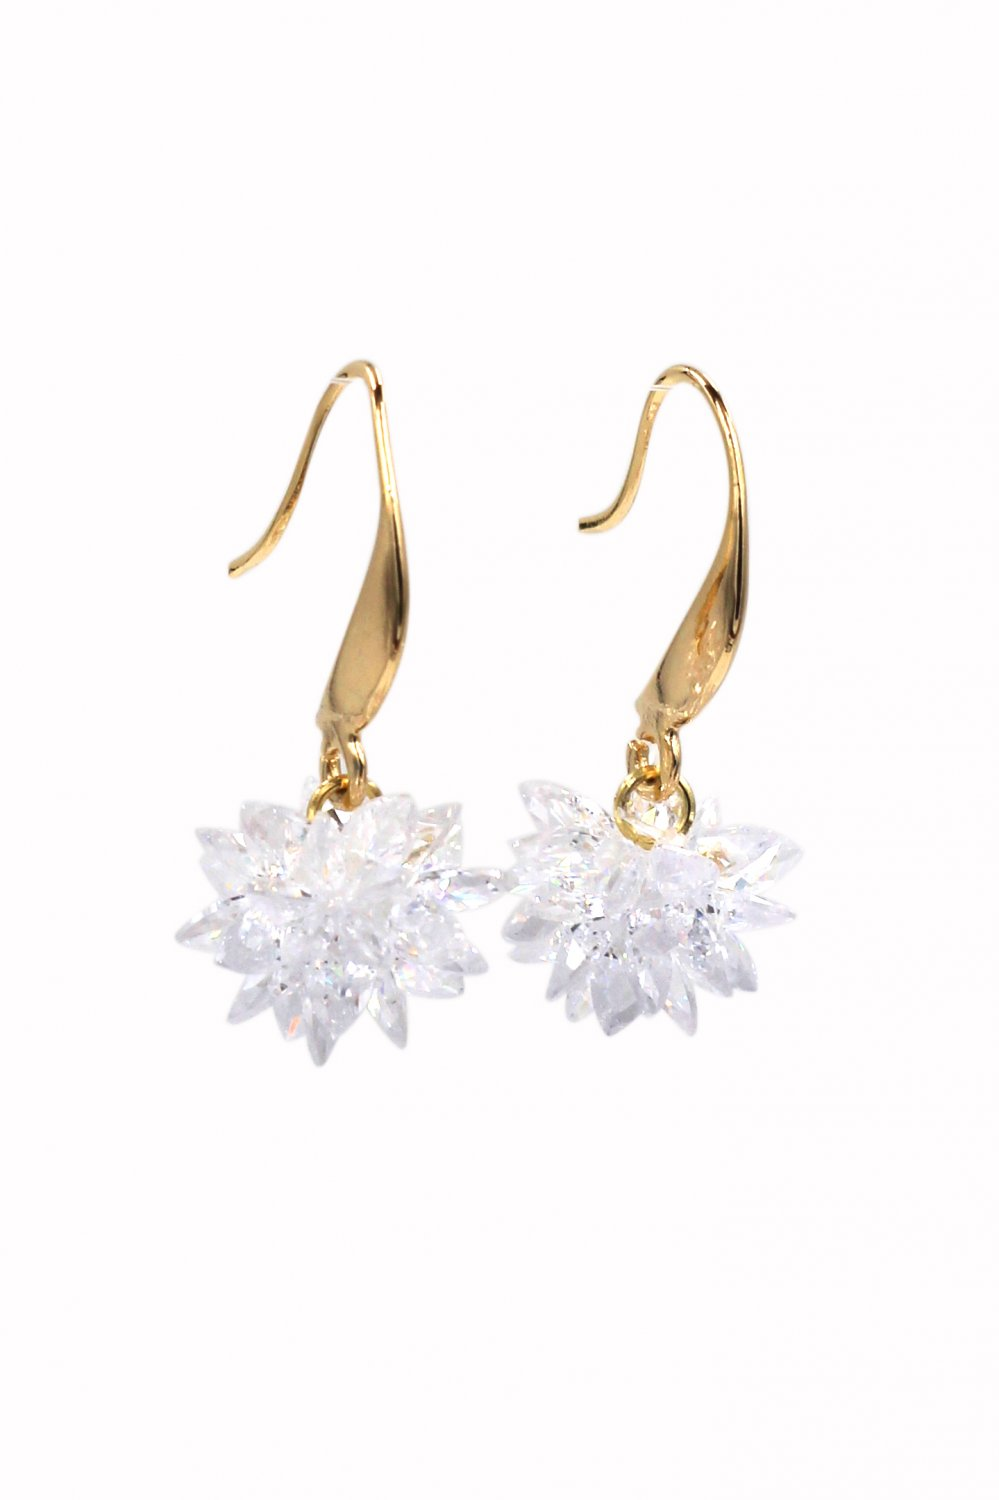 Sparkling snowflake crystal gold earrings